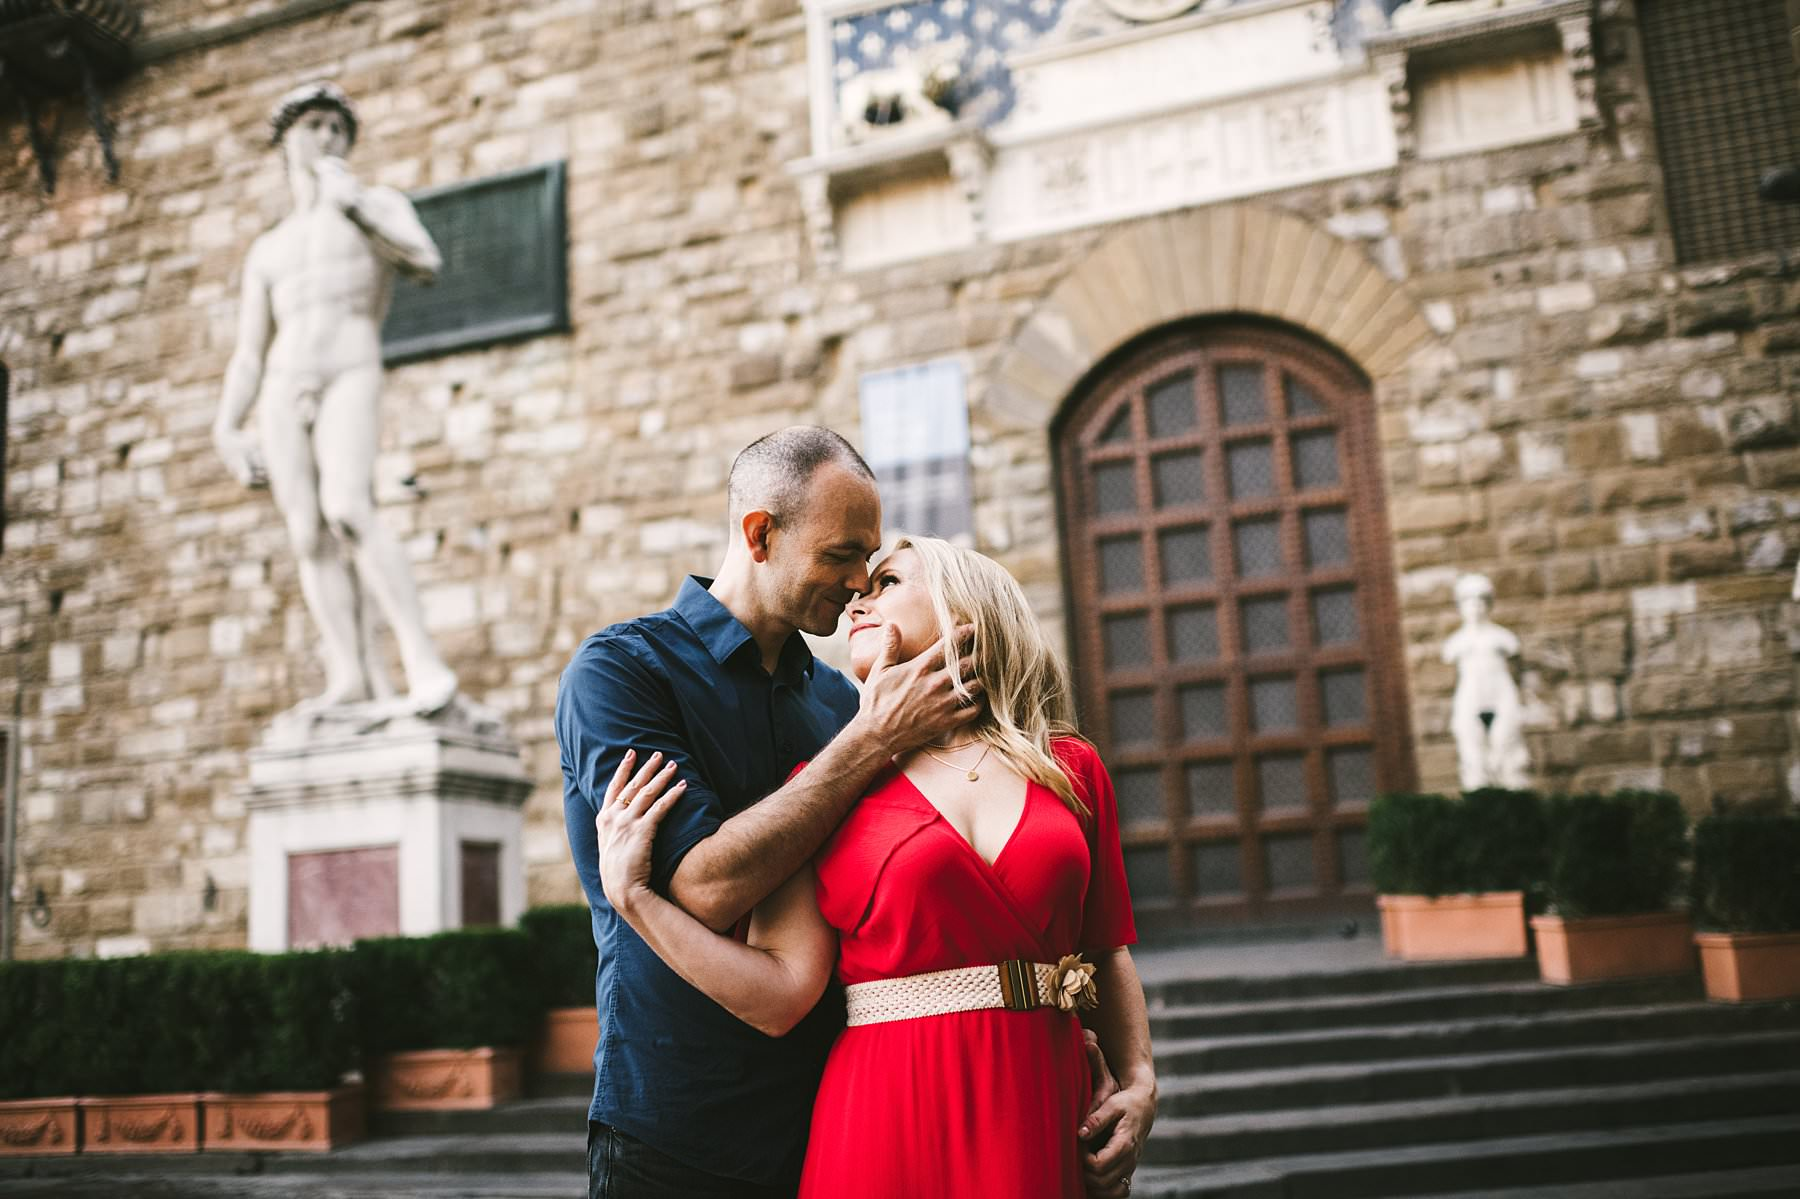 Anisa and Kevin's delightful anniversary photos. Lovely American couple sunrise photo shoot in Florence at Sunrise near Palazzo Vecchio